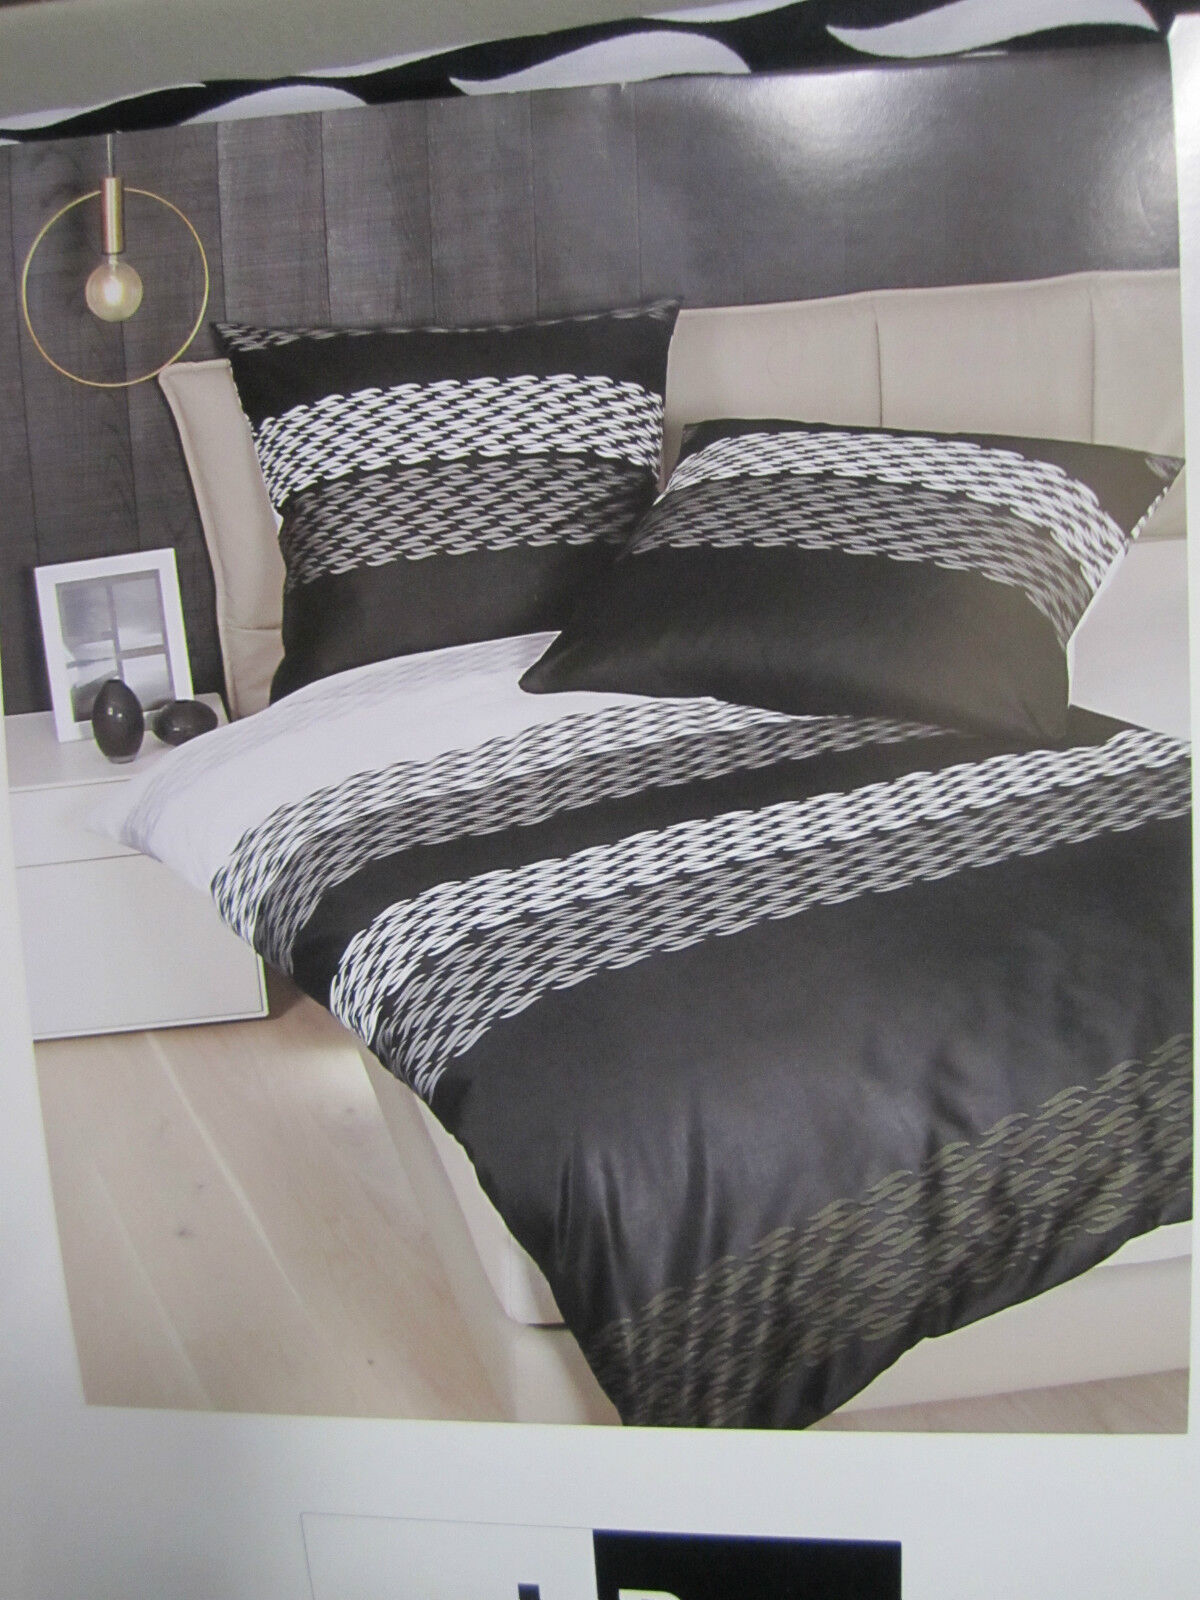 janine mako satin bettw sche 135x200 bettgarnitur streifen dessin gr n baumwolle ebay. Black Bedroom Furniture Sets. Home Design Ideas